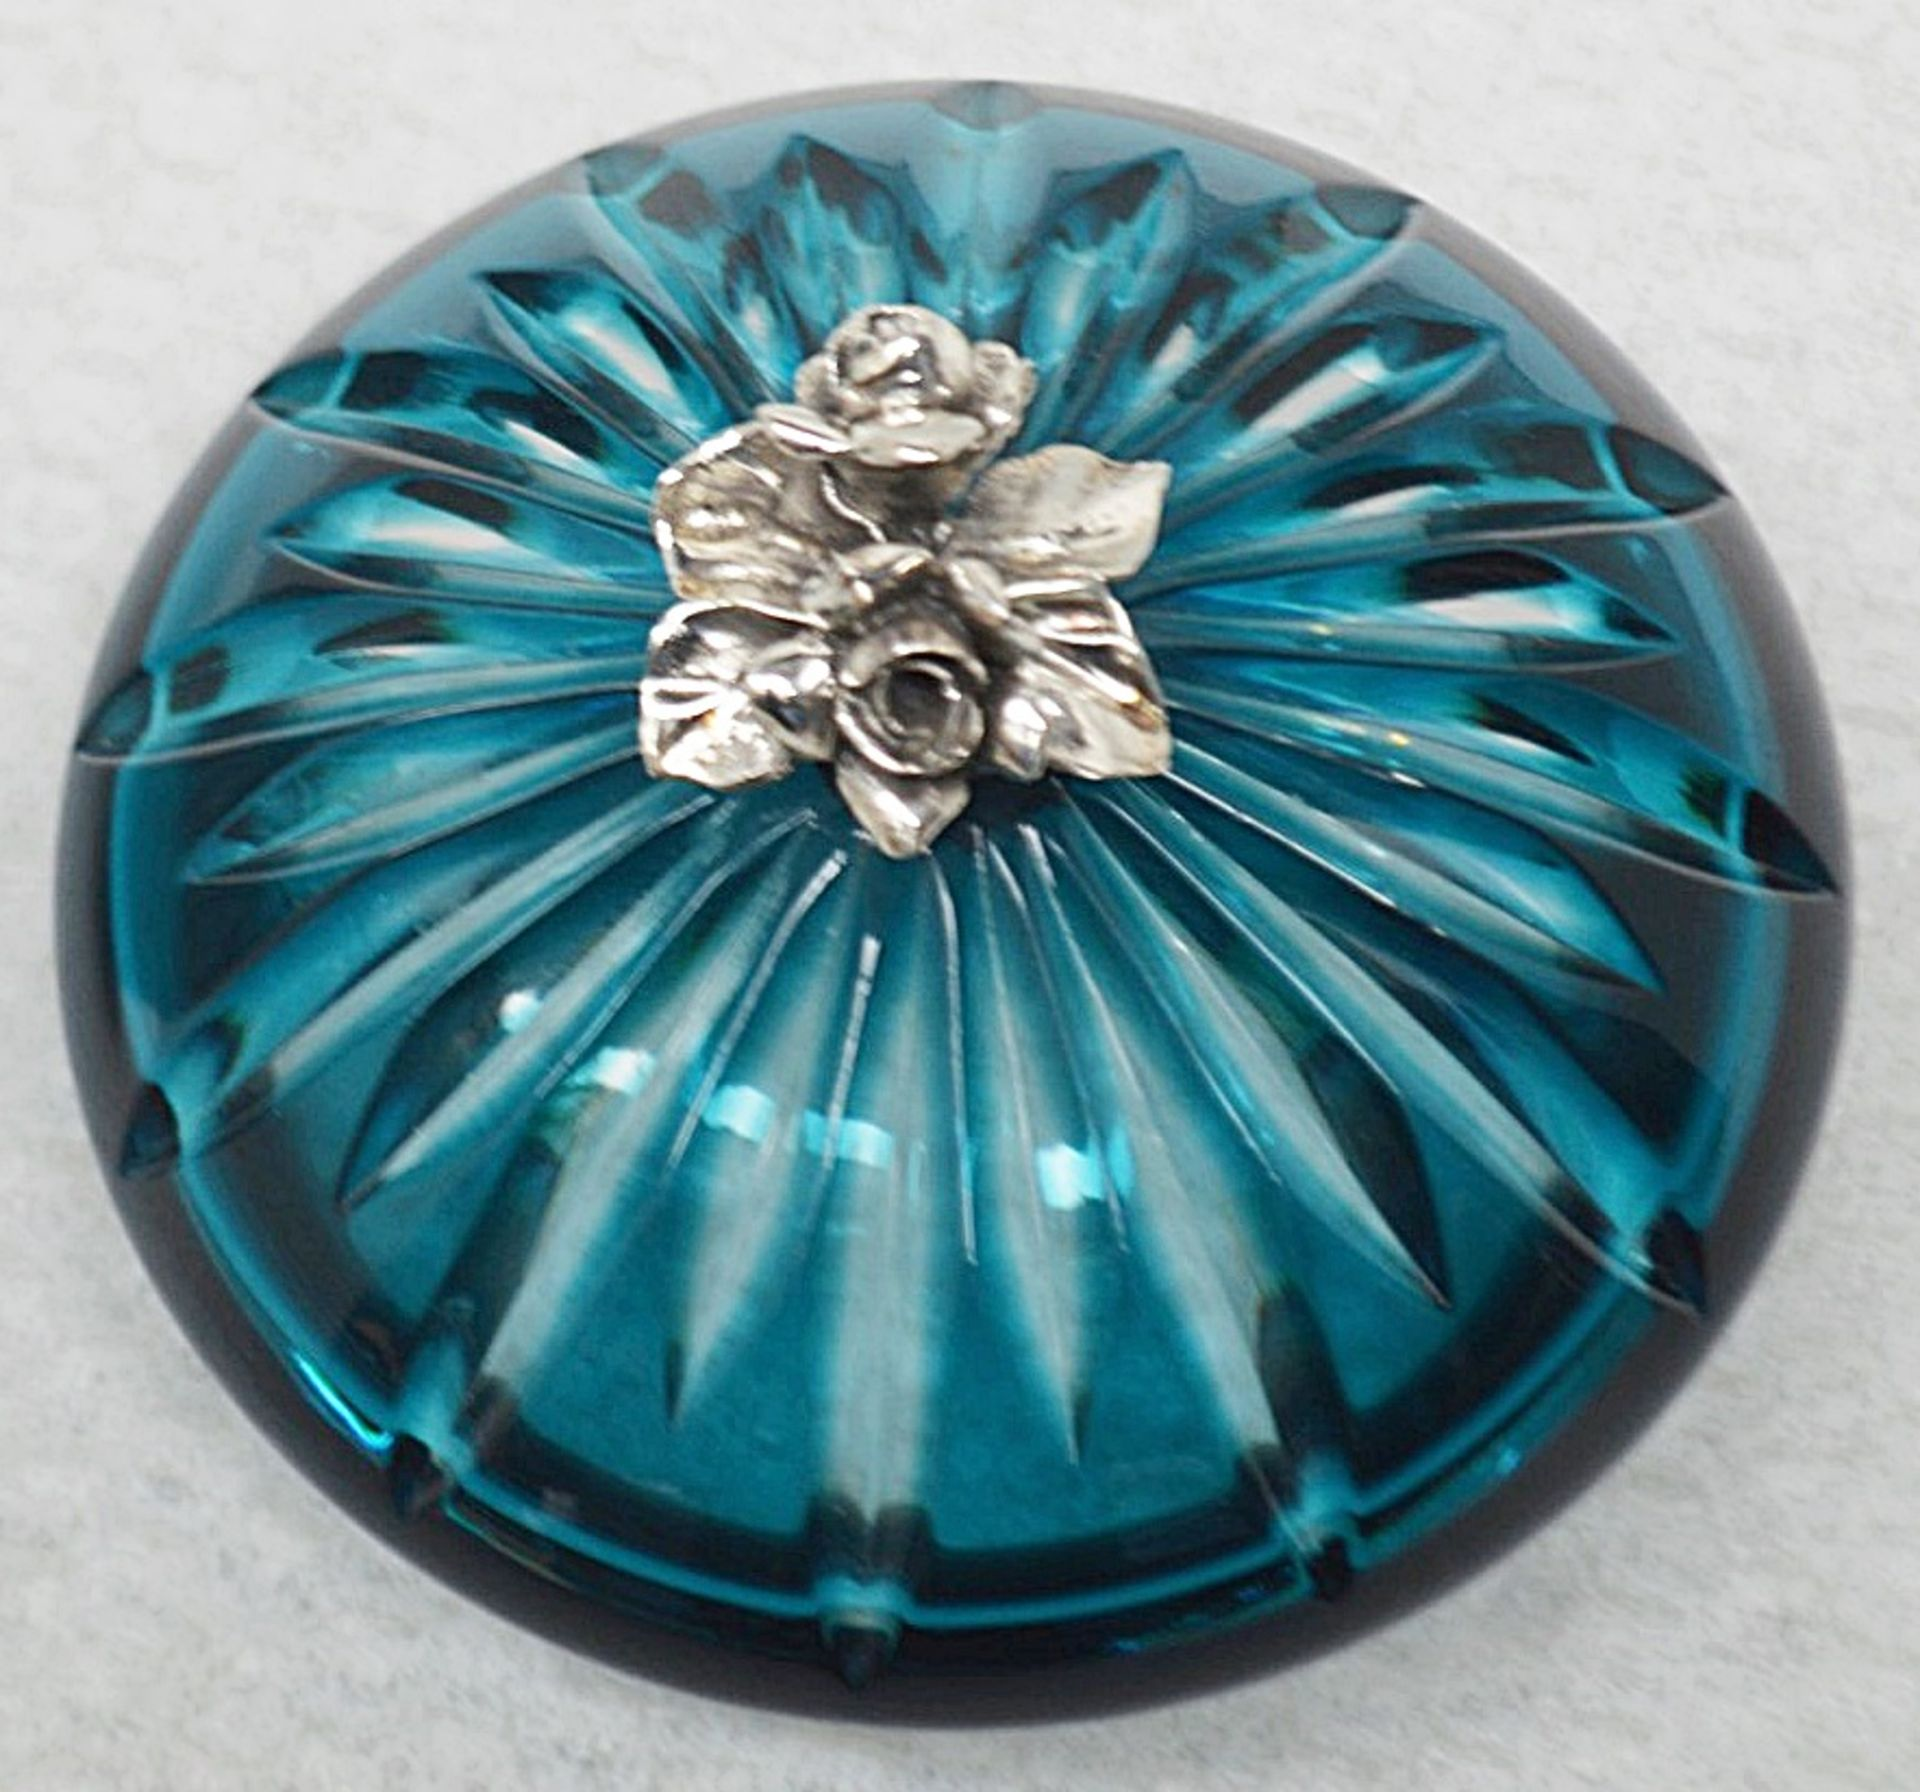 1 x BALDI 'Home Jewels' Italian Hand-crafted Artisan Crystal Coccinella Box In Turquoise - RRP £900 - Image 4 of 5